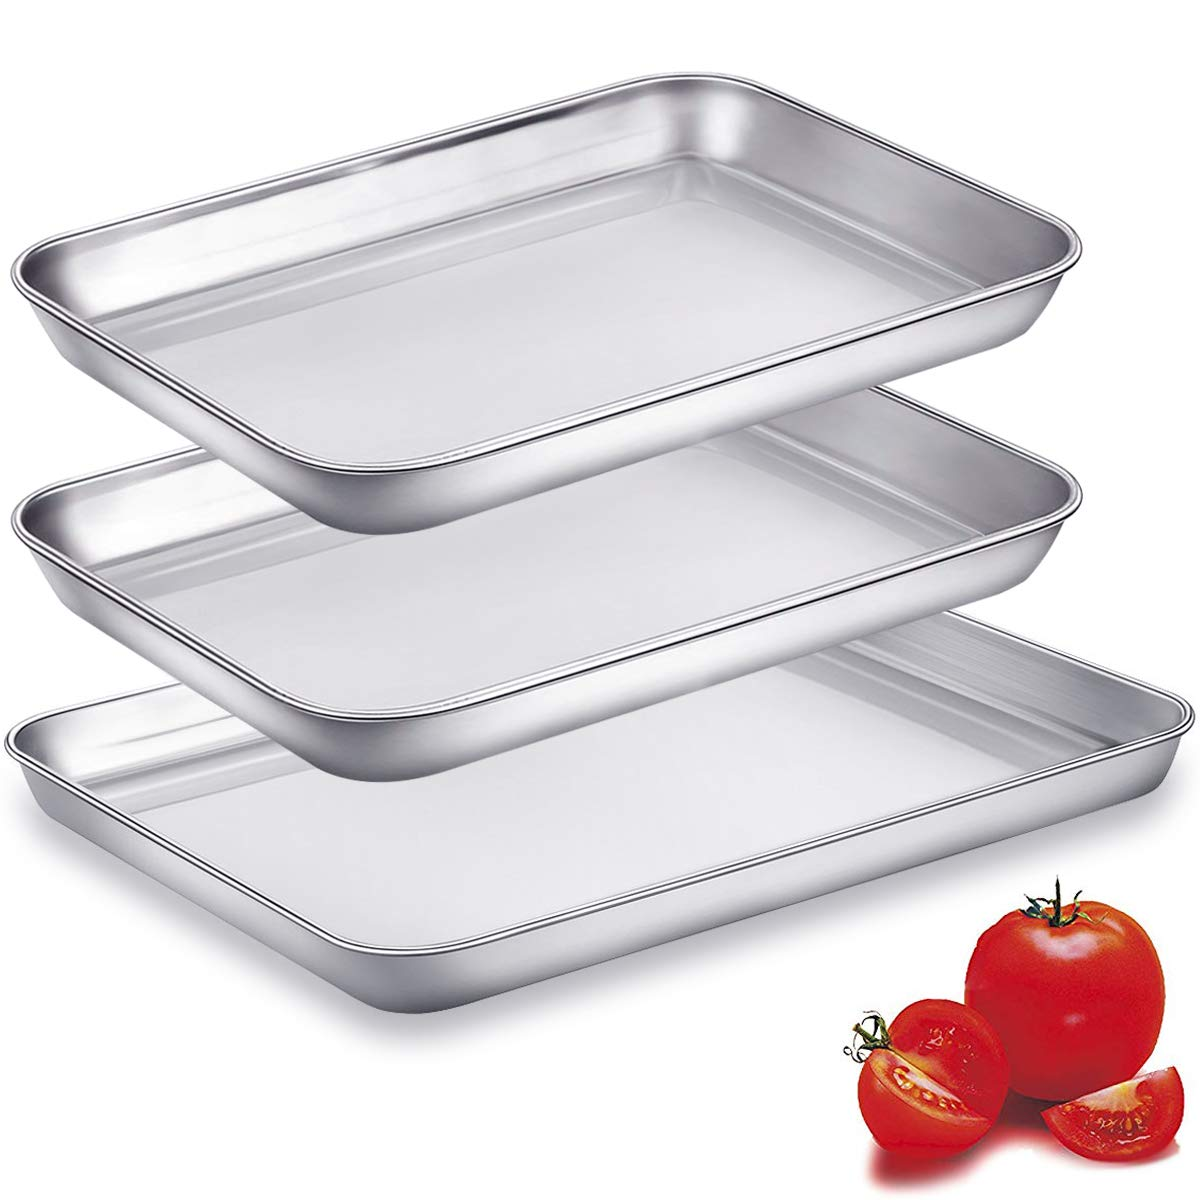 Baking Sheet Pans for Toaster Oven, Small Stainless Steel Cookie Sheets Metal Bakeware Pan, Sturdy & Heavy Rectangle Tray by Eaninno, 10 & 9 inch, 3 Piece/Set